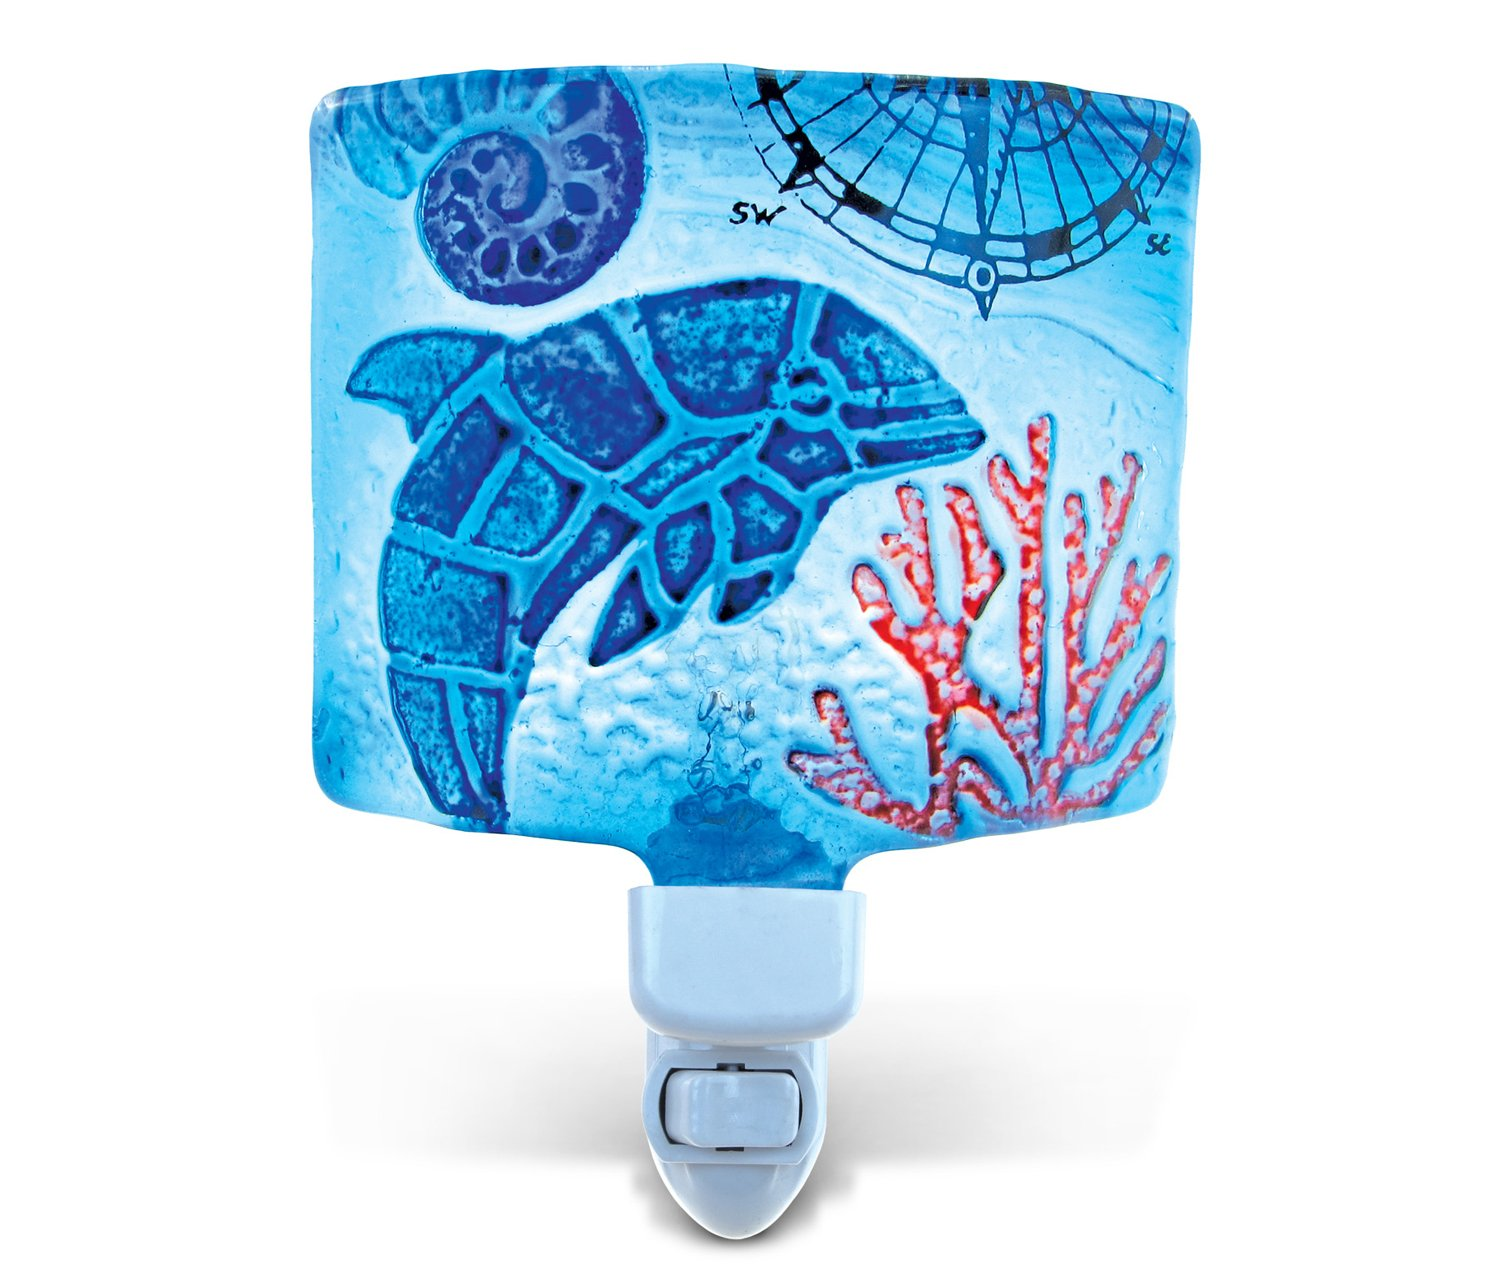 Puzzled Dolphin Night Light, Glass Art Plug in Energy Efficient Decorative Socket Lamp Manual On & Off Portable Lights Stairway Hallway Bedroom Bathroom Nursery Kids Accessory Home & Kitchen Decor